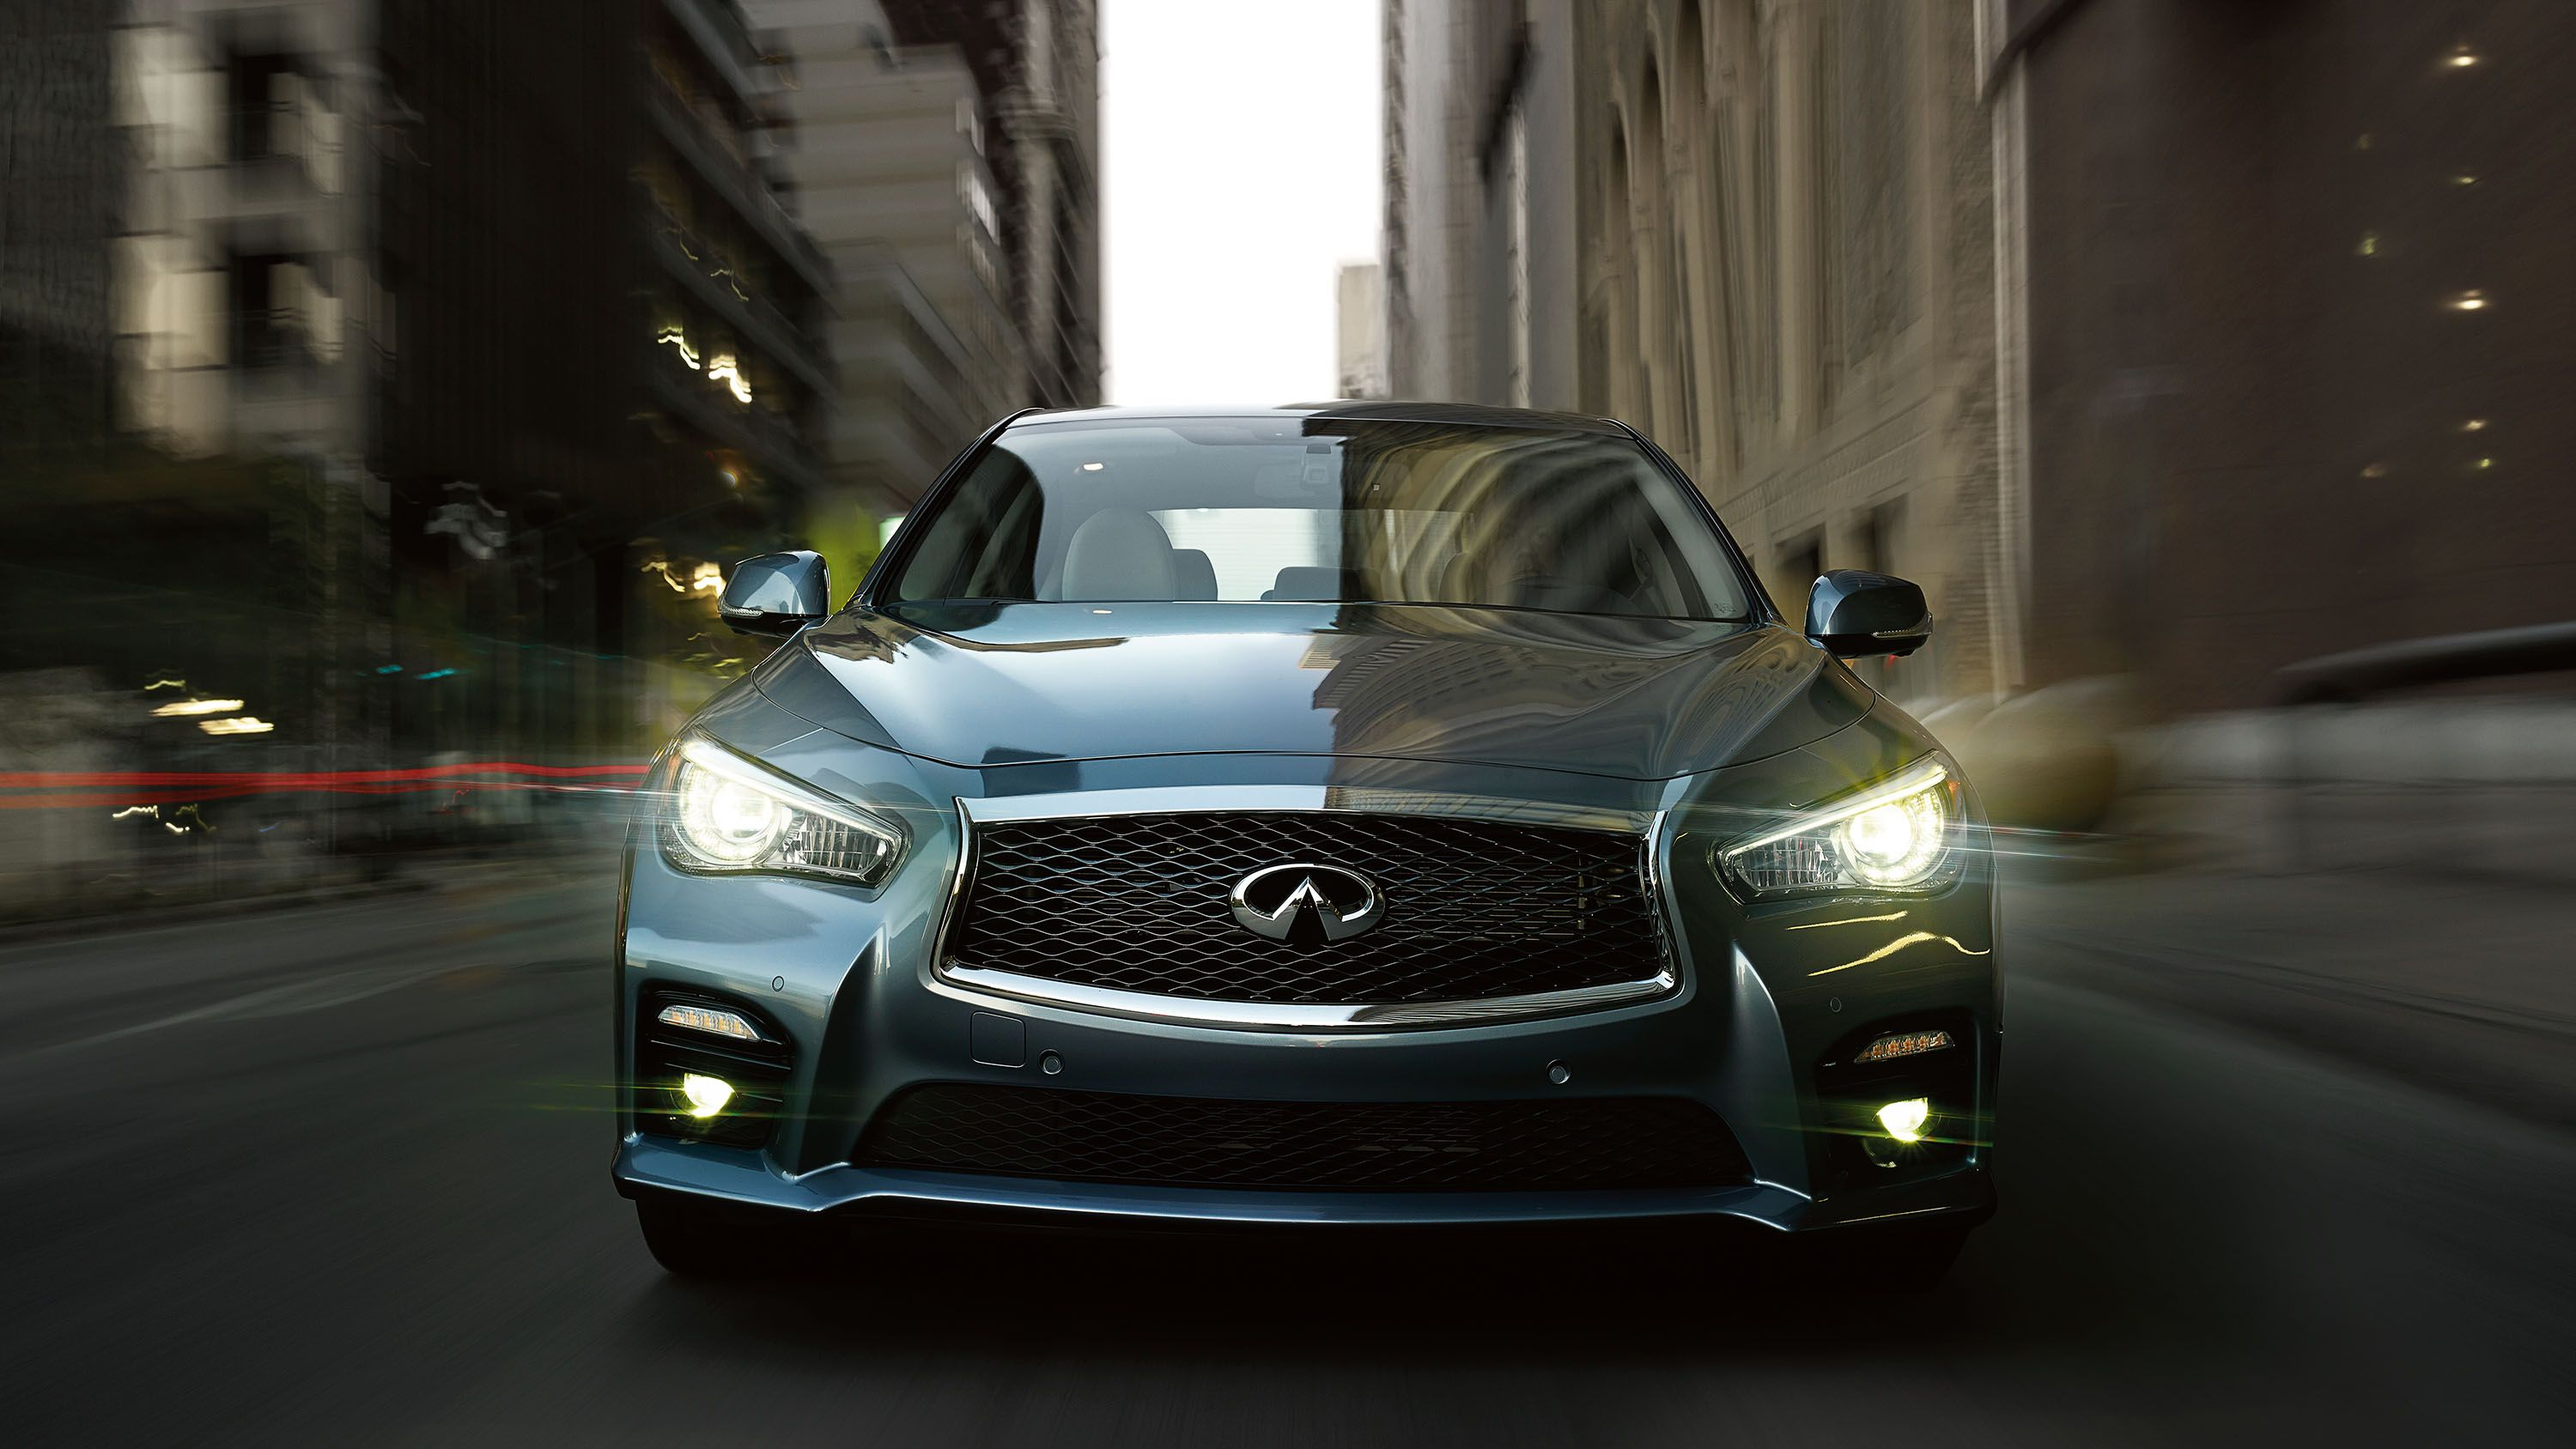 dealers infiniti fette us com highway mip yp clifton nj infinity